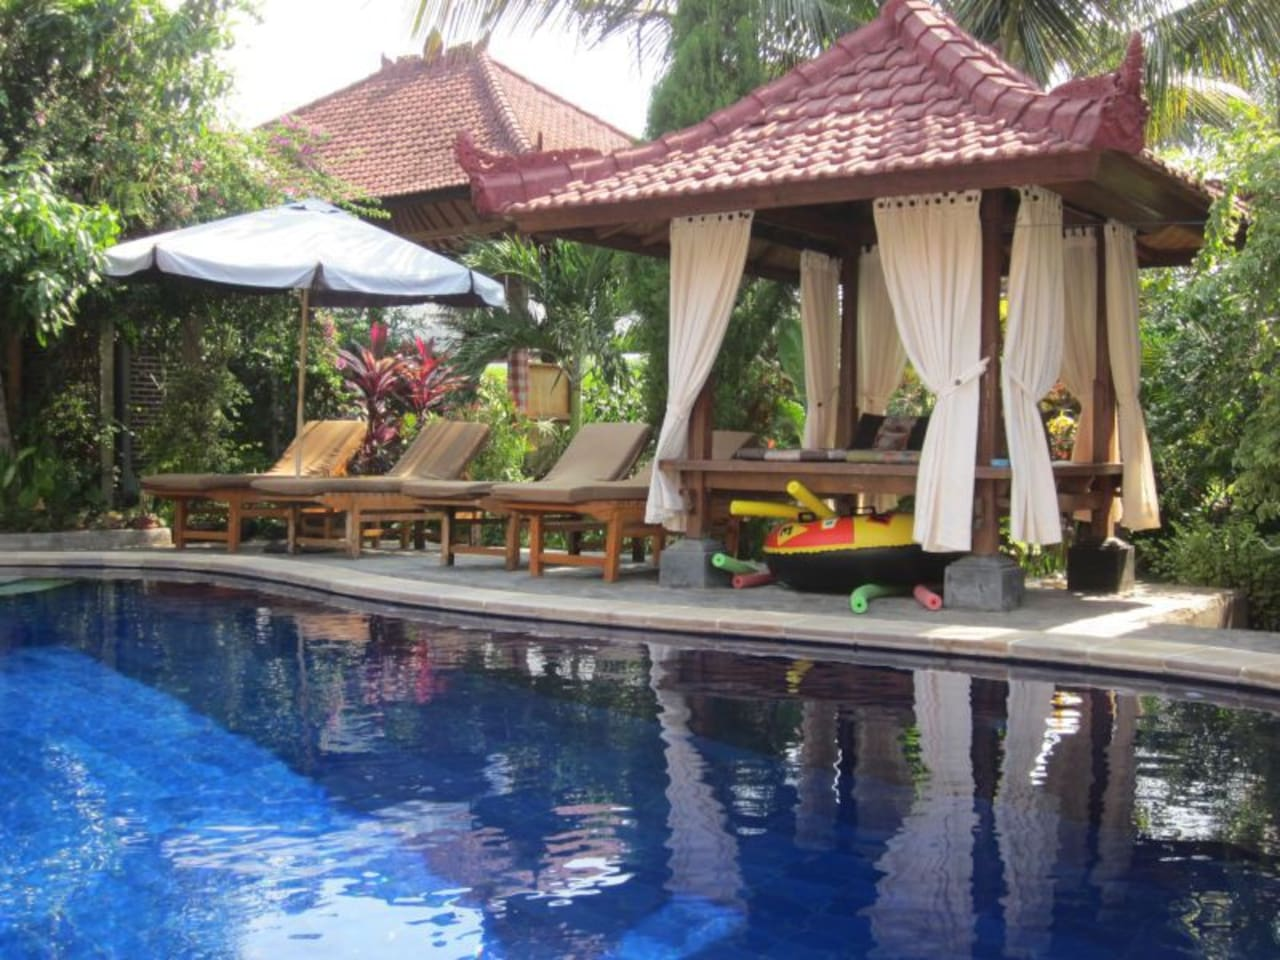 We plenty of places to relax by the pool or even get a massage!